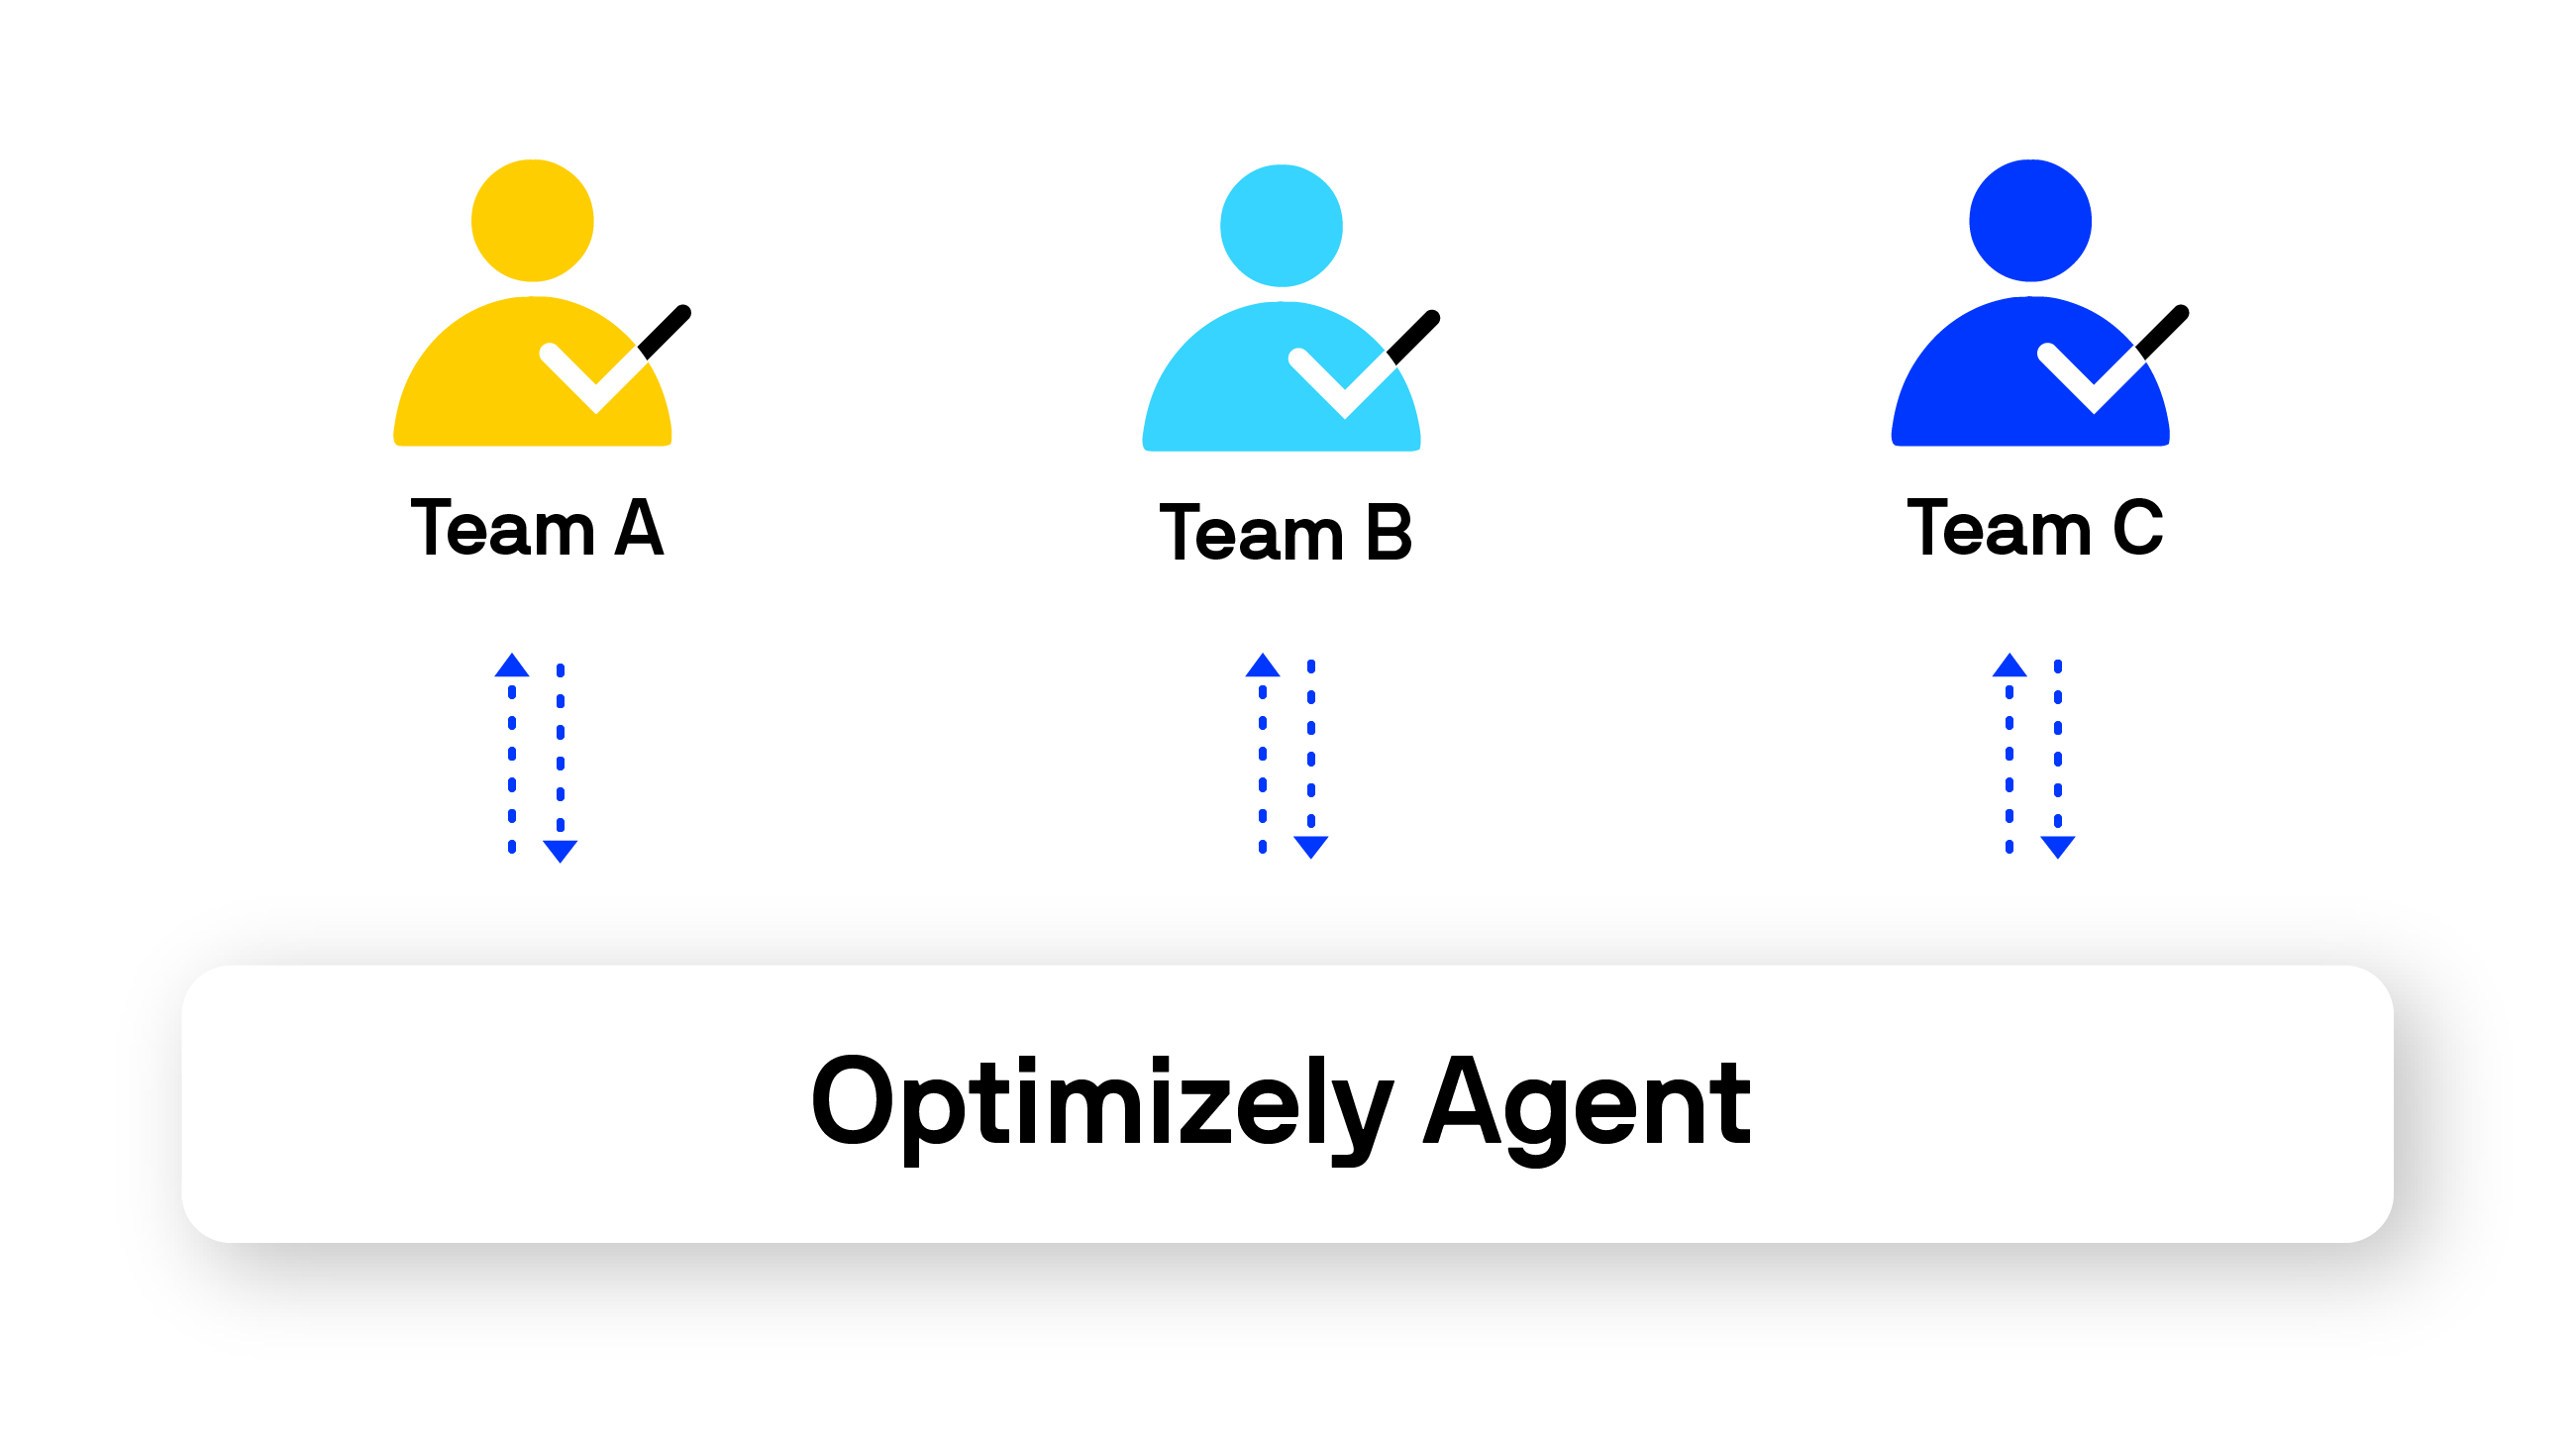 """""""A diagram showing the central and standardized access to the Optimizely Agent service across an arbitrary number of teams.\n(Click to Enlarge)"""""""